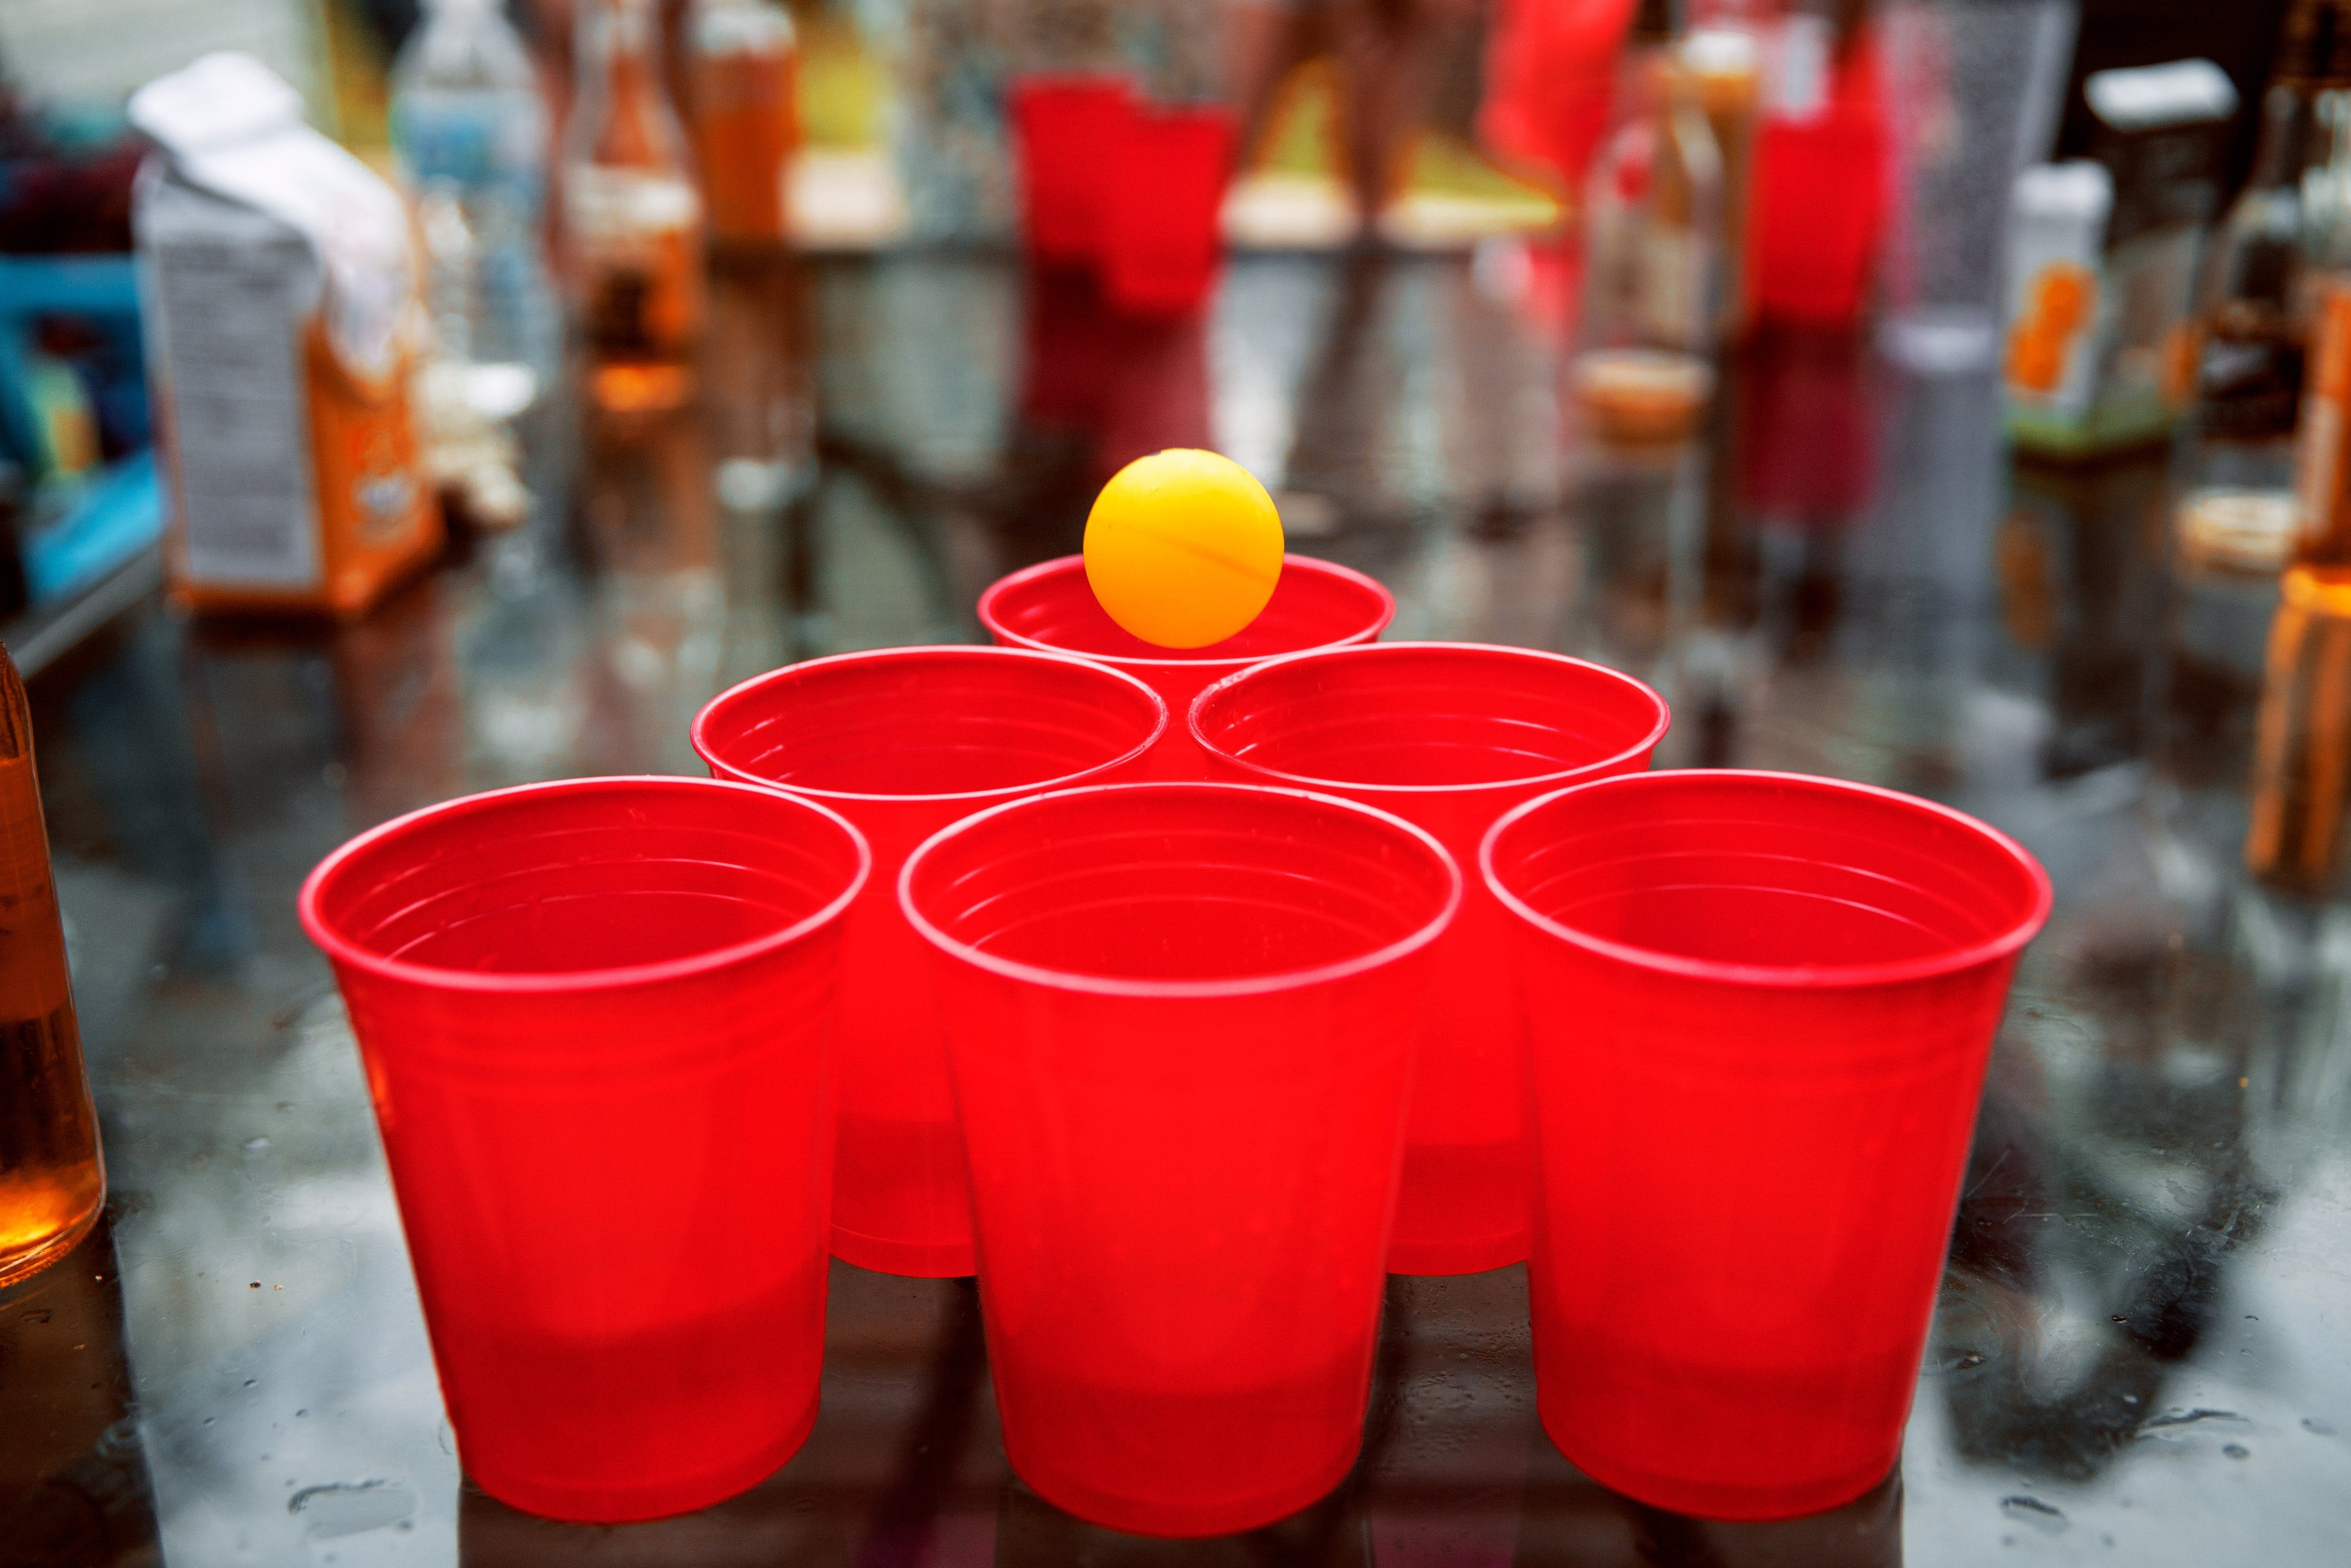 Six Red Cups